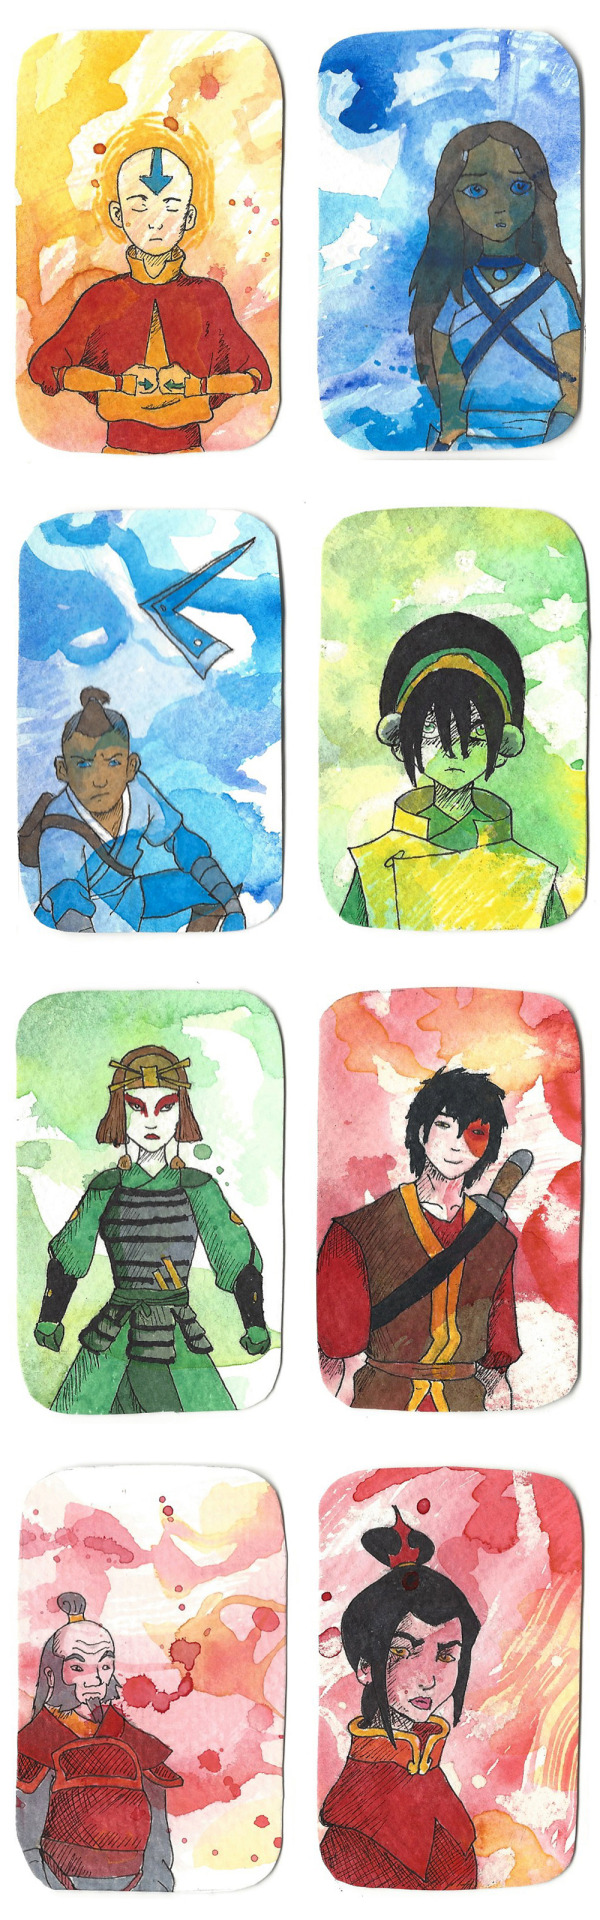 More art cards, this time from Avatar: The Last Airbender! Markers on top of watercolor.